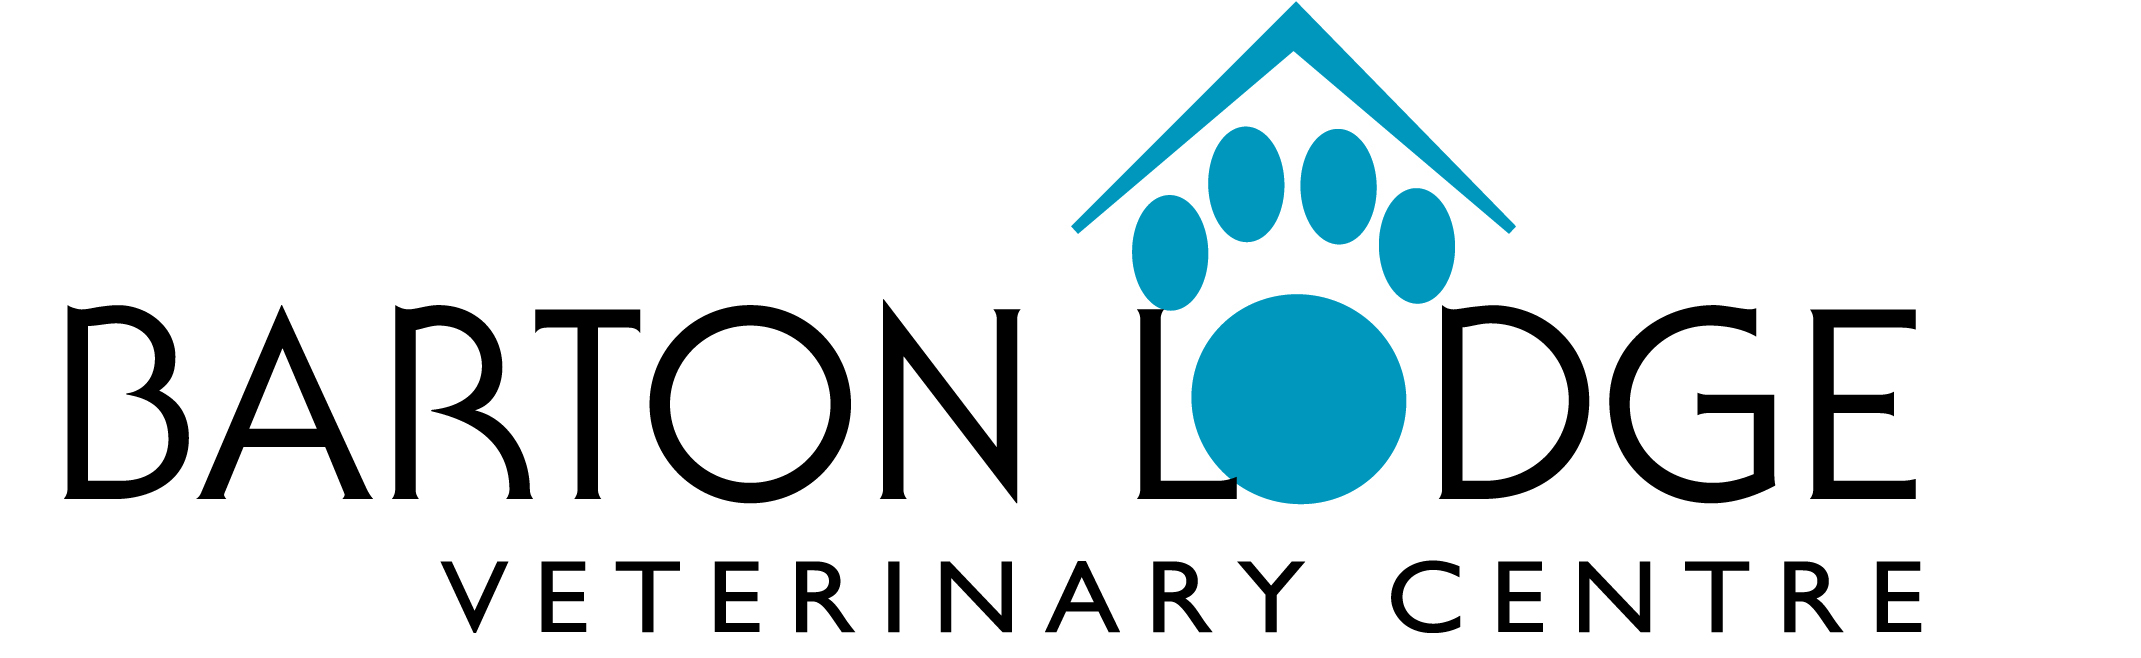 Barton Lodge Veterinary Centre